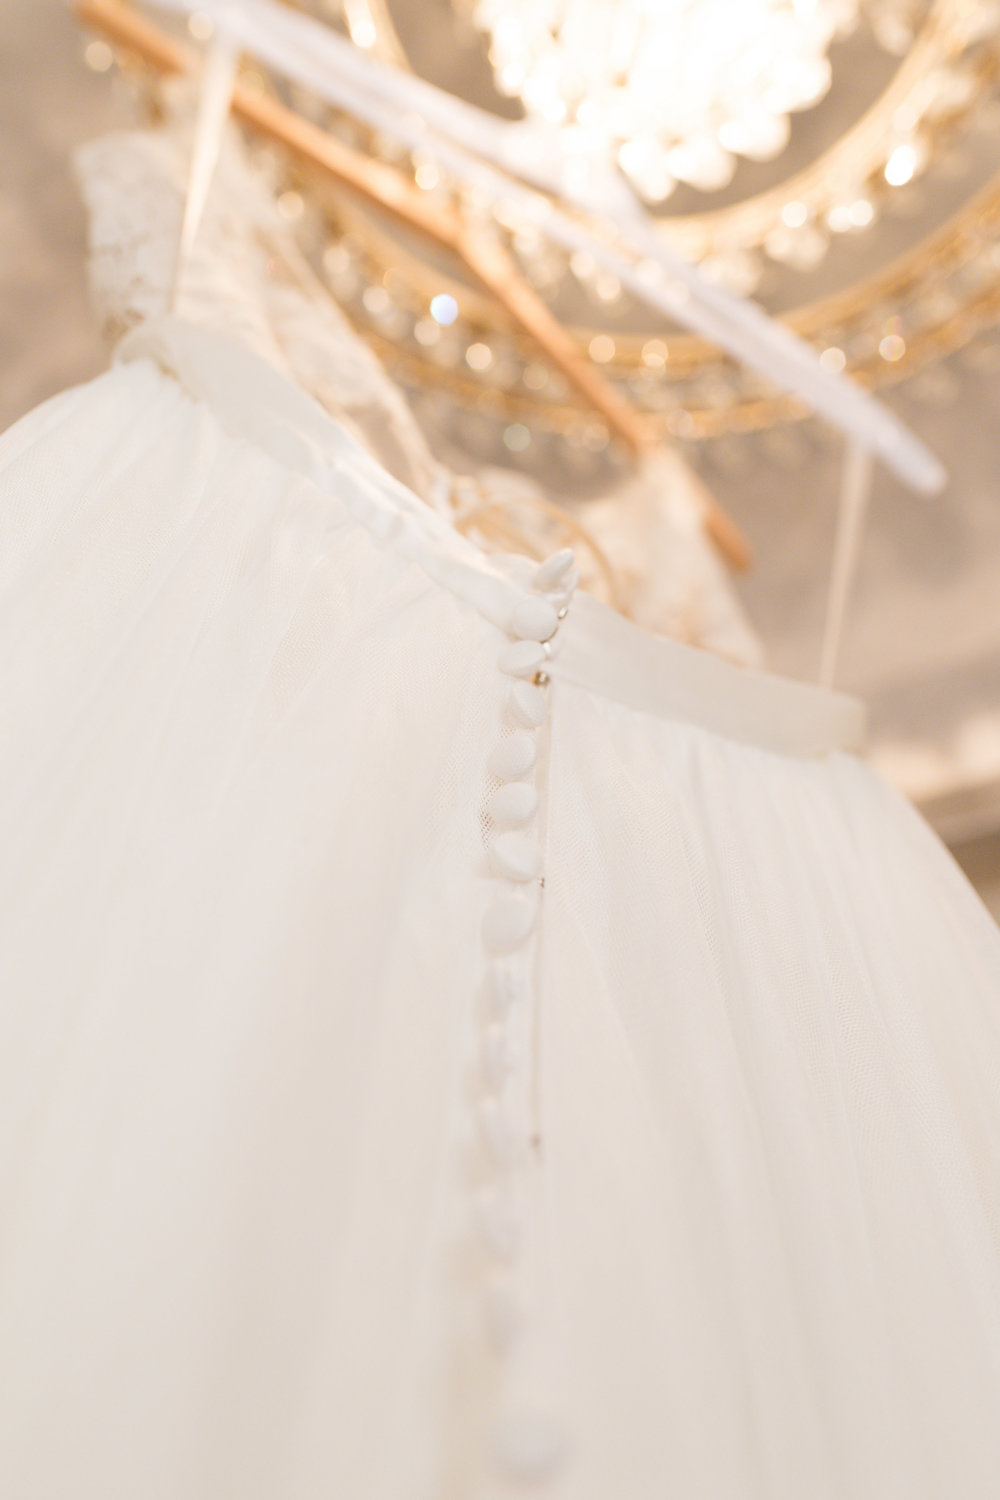 Maggie Tony Wedding-Details-0014.jpg